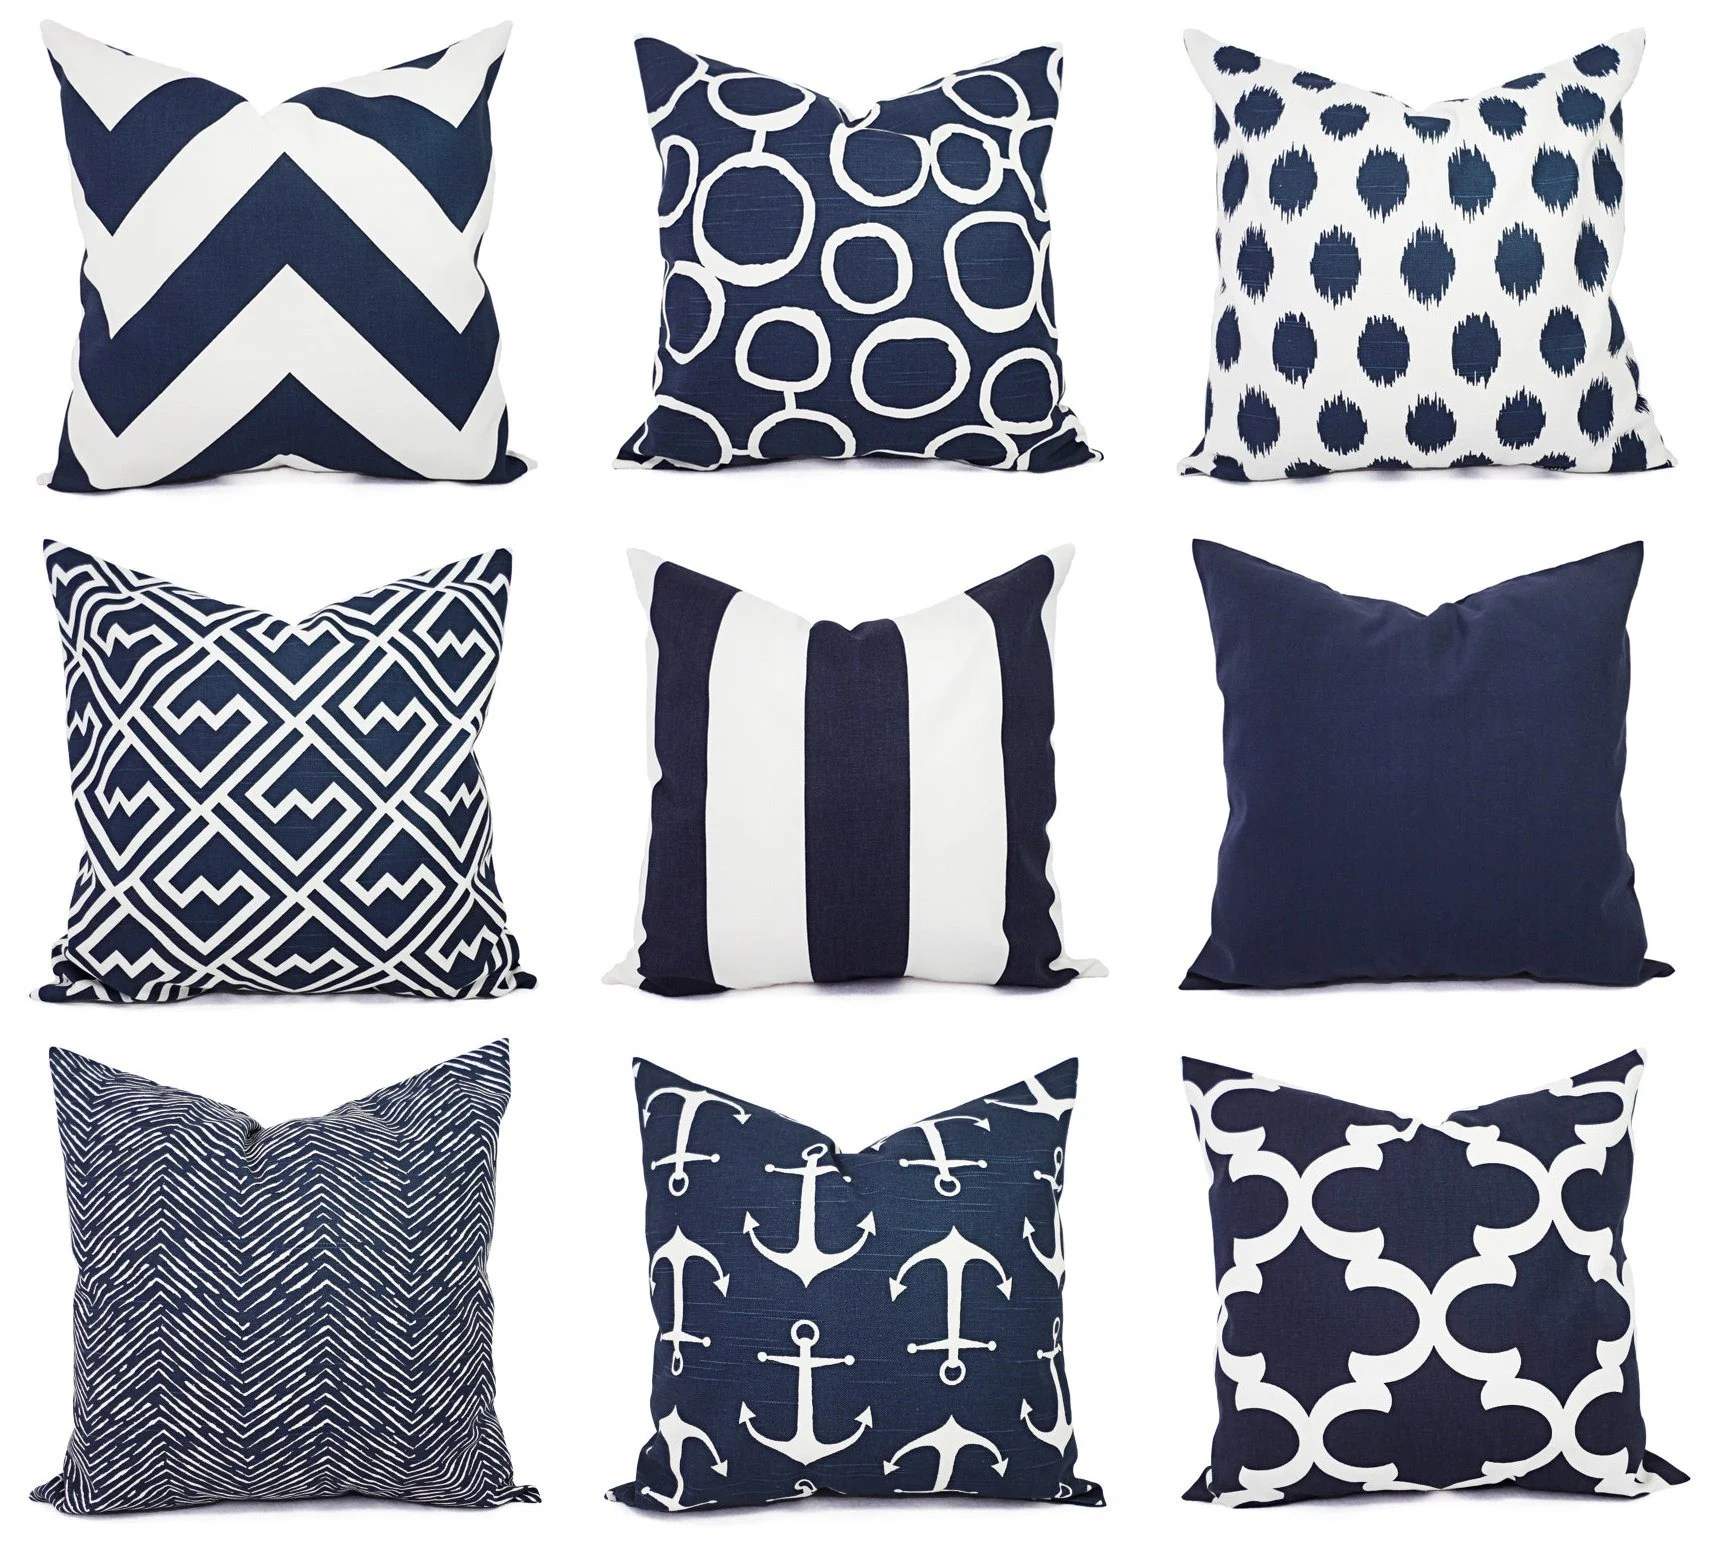 one navy and white pillow covers 16 x 16 inch navy blue throw pillow cover decorative pillow cushion cover navy blue pillows